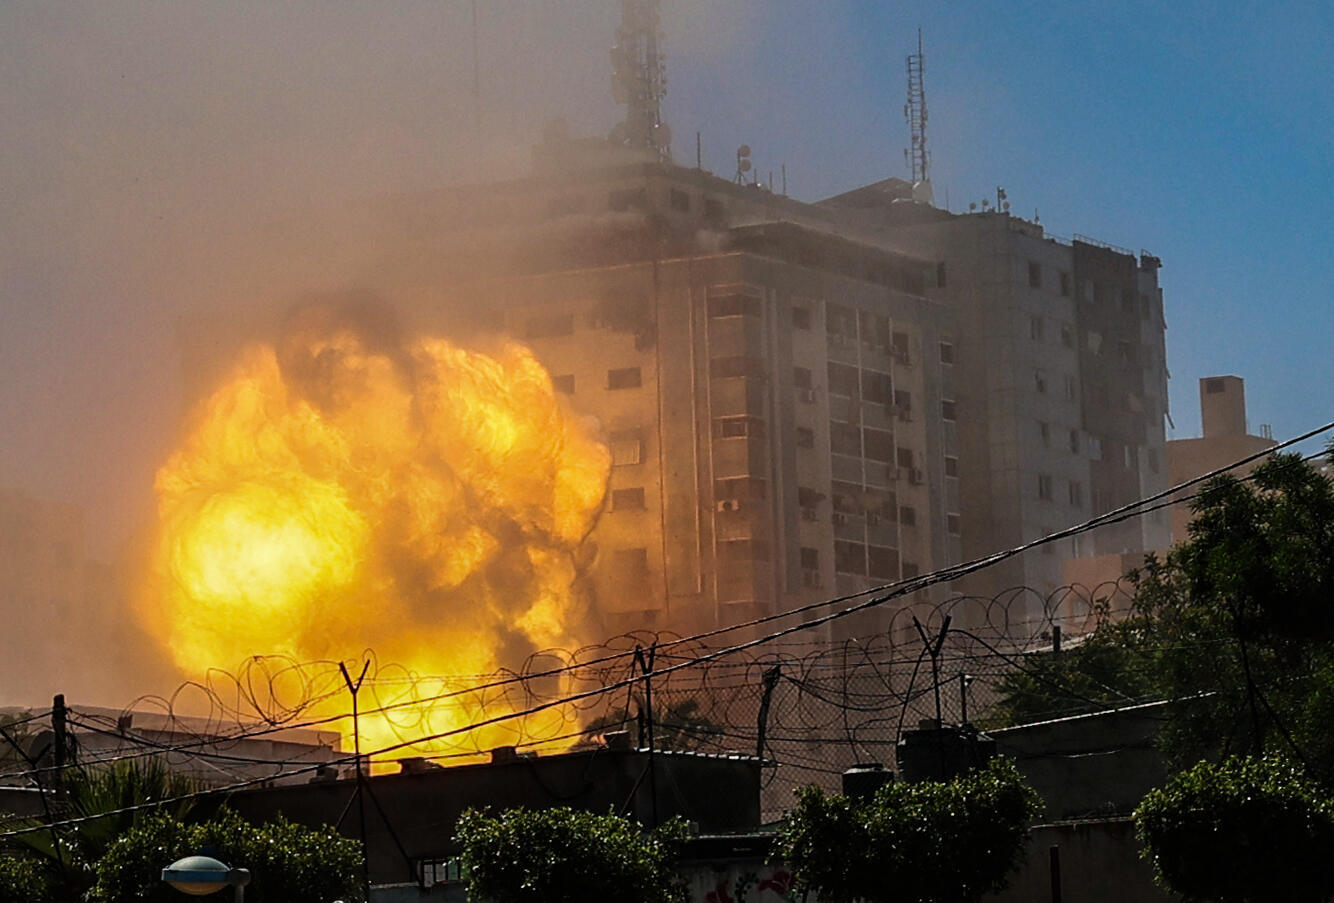 A ball of fire explodes after an Israeli air strike hits the Jala Tower in the Gaza Strip destroying the 13-storey building that house the offices of Al Jazeera television and US news agency The Associated Press